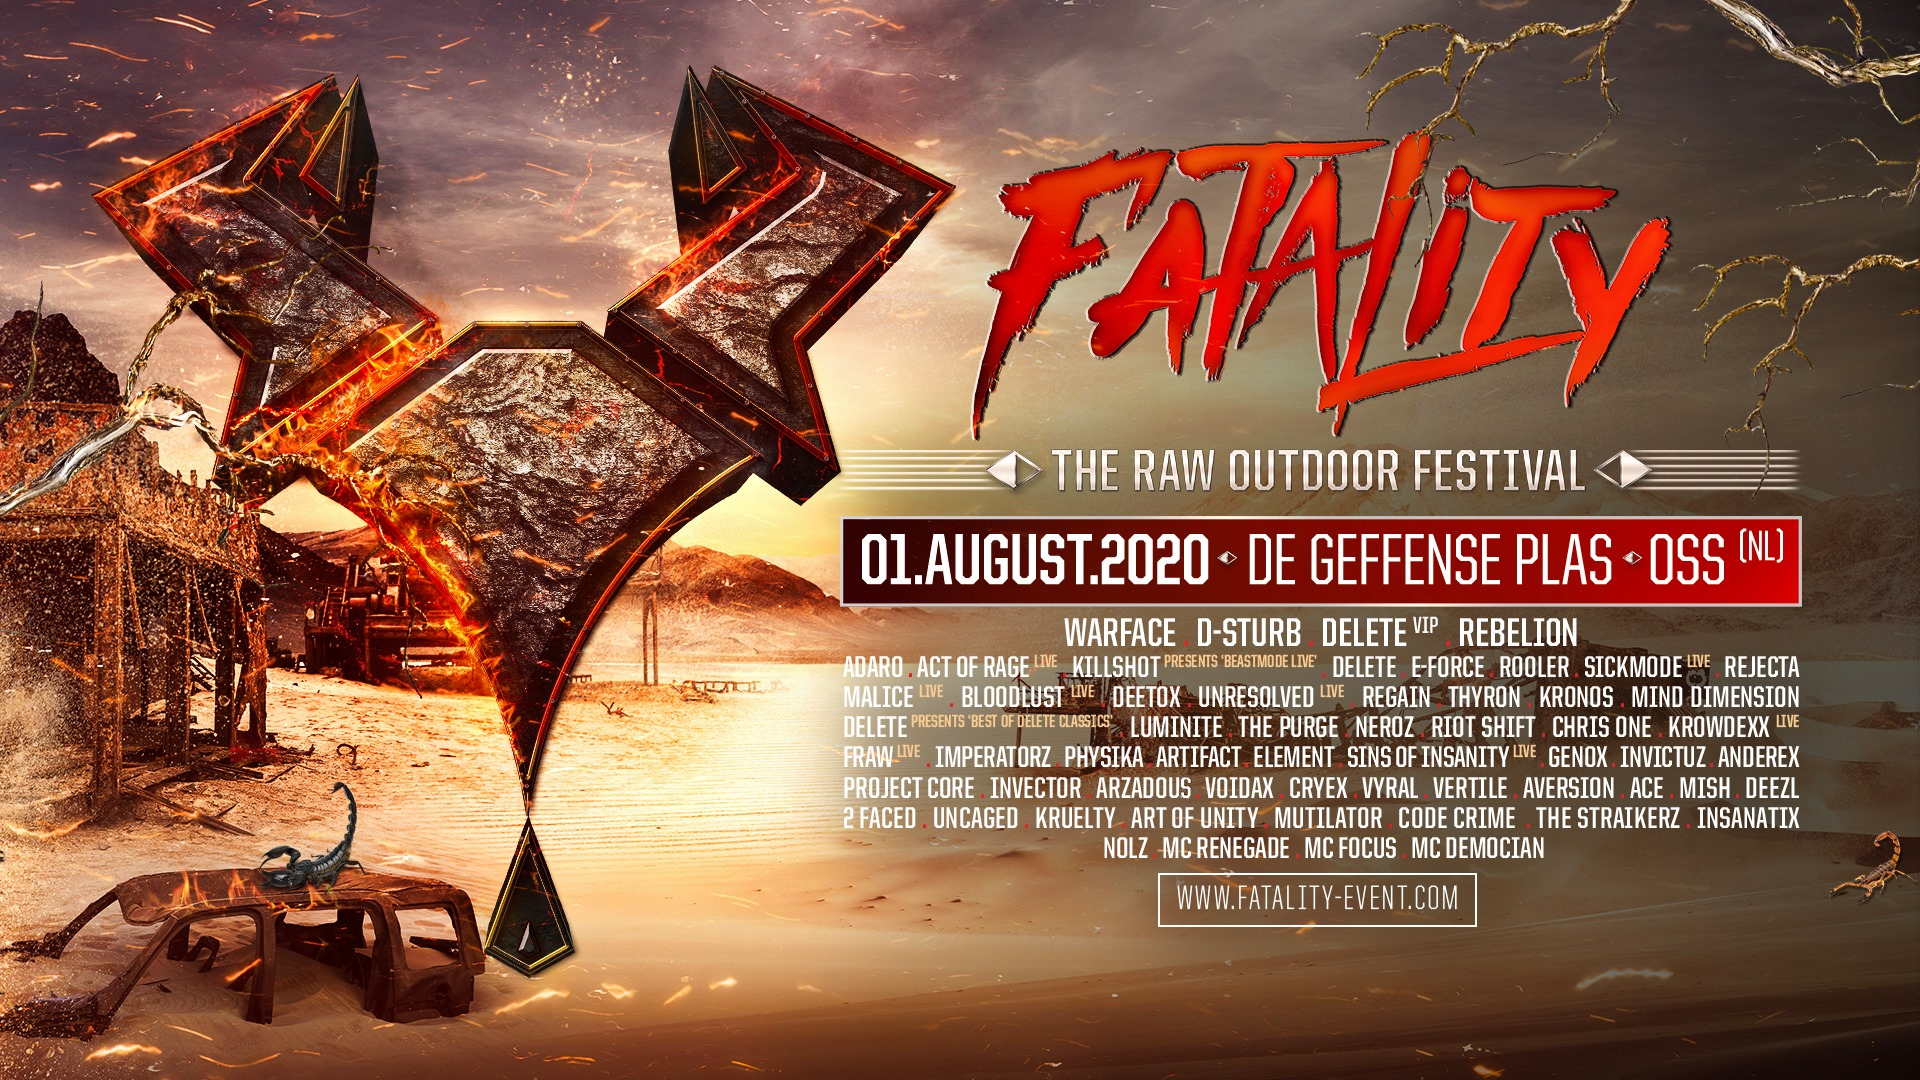 Fatality - The Raw Outdoor Festival 2020